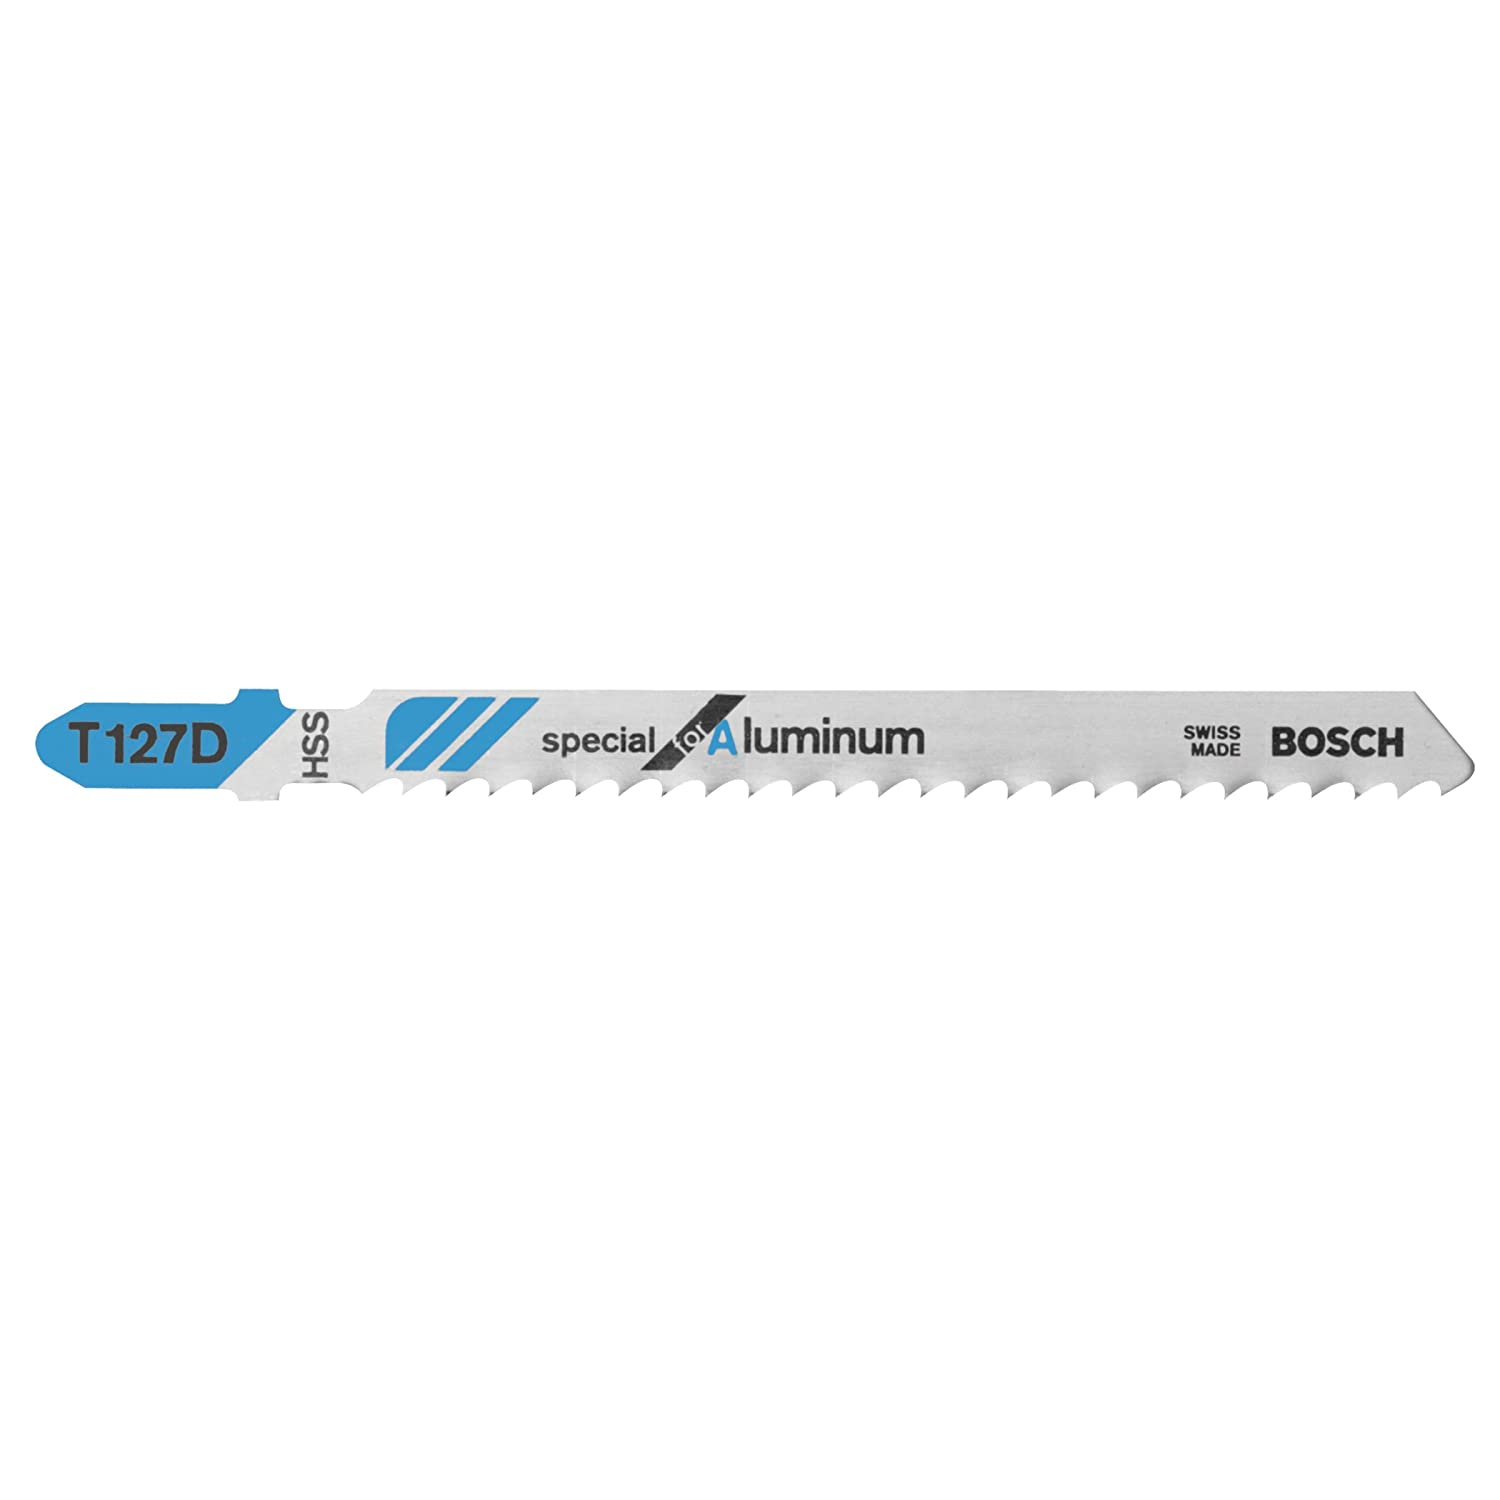 Bosch T127D 5-Piece 4 In. 8 TPI Special for Aluminum T-Shank Jig Saw Blades